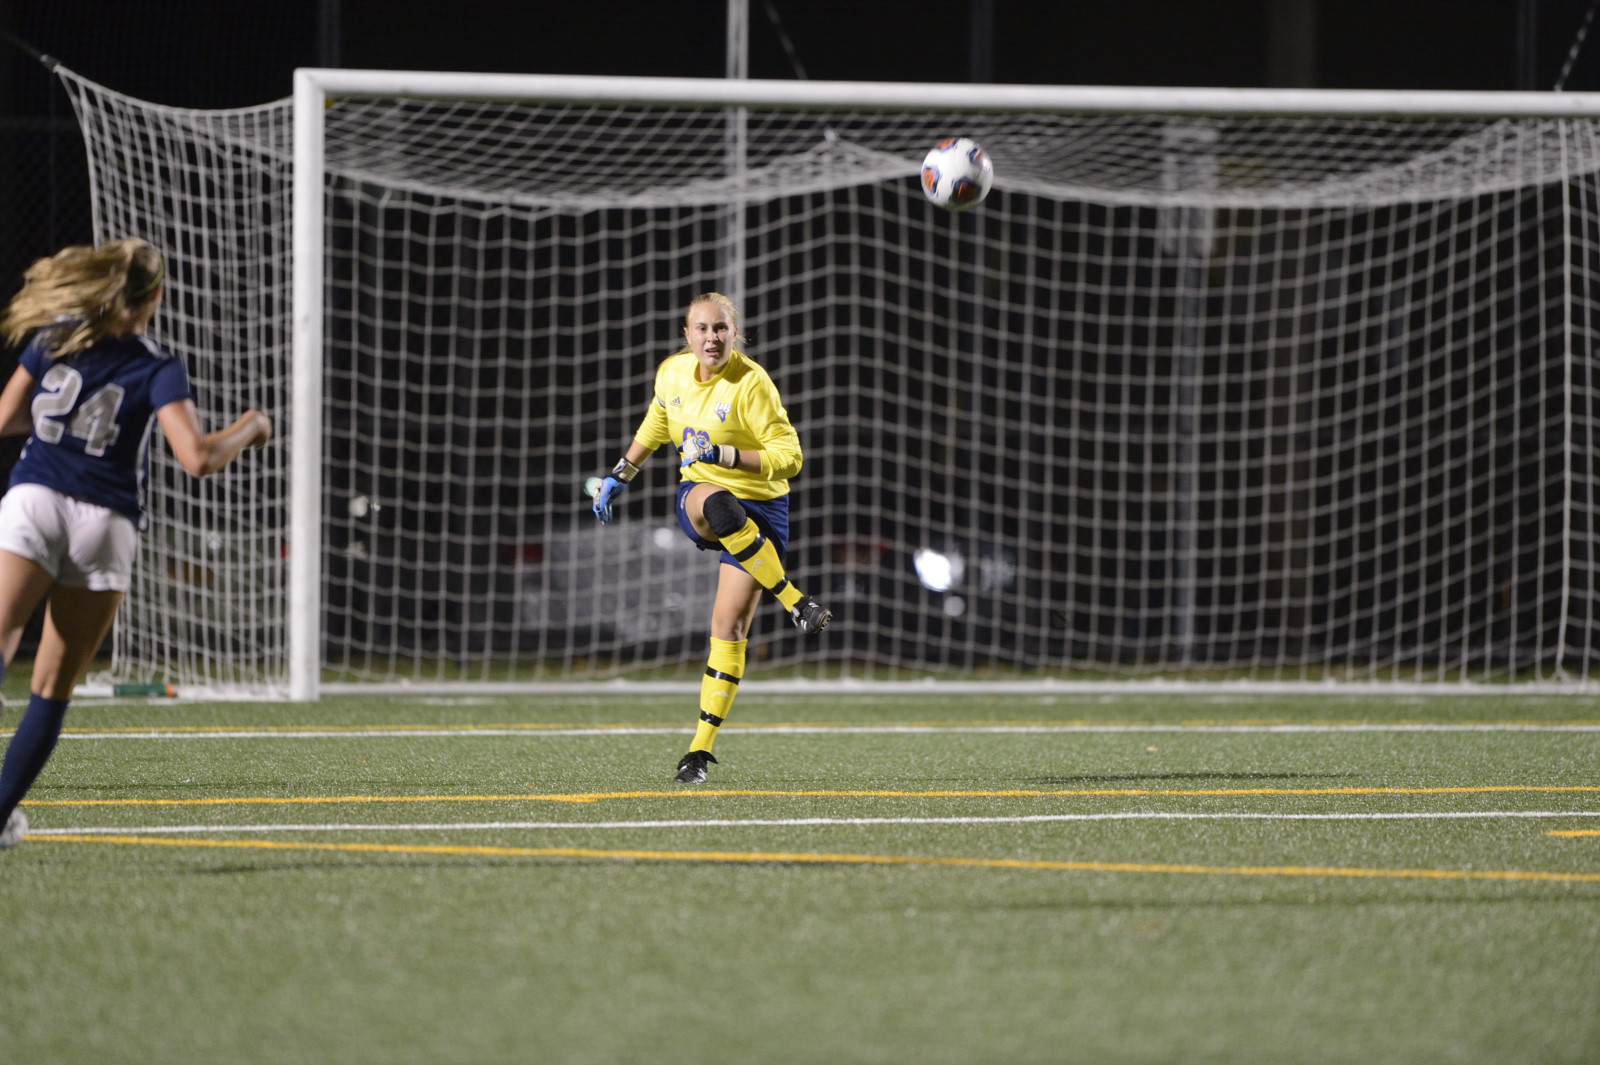 UB Women's Soccer Now 2-0 On The Season After Blanking Southern Connecticut State, 1-0